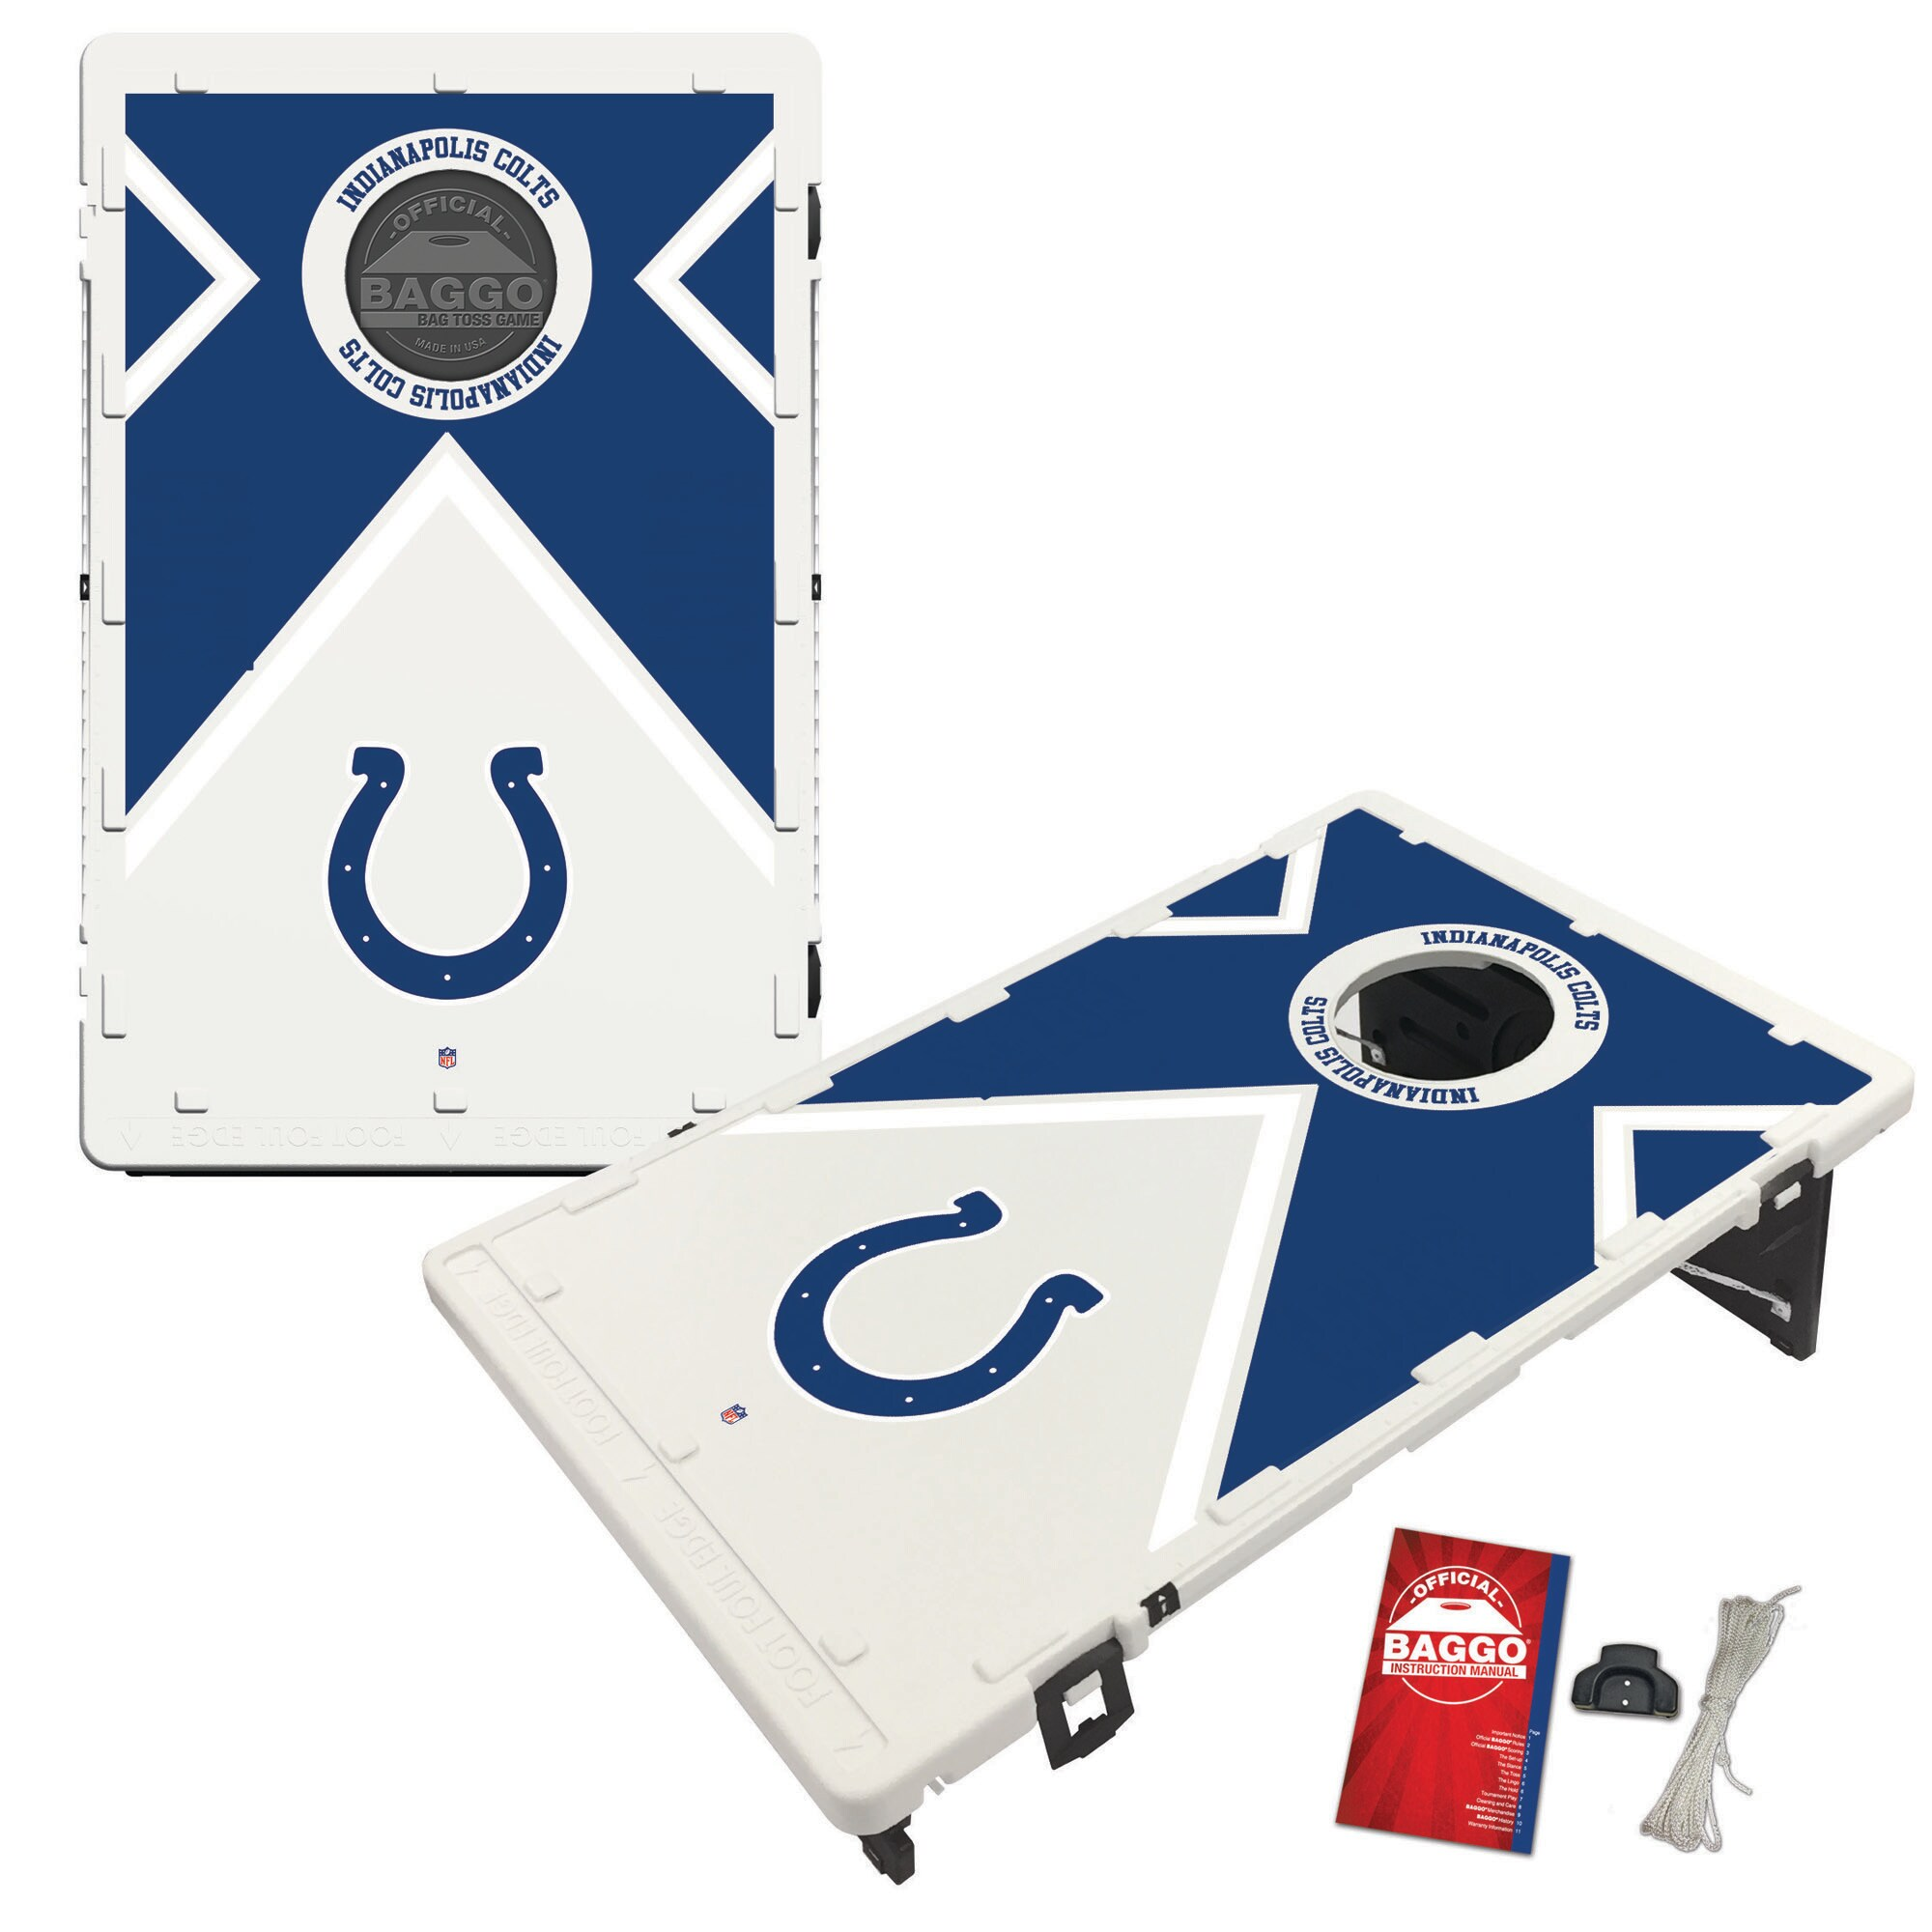 Indianapolis Colts 2' x 3' BAGGO Vintage Cornhole Board Tailgate Toss Set